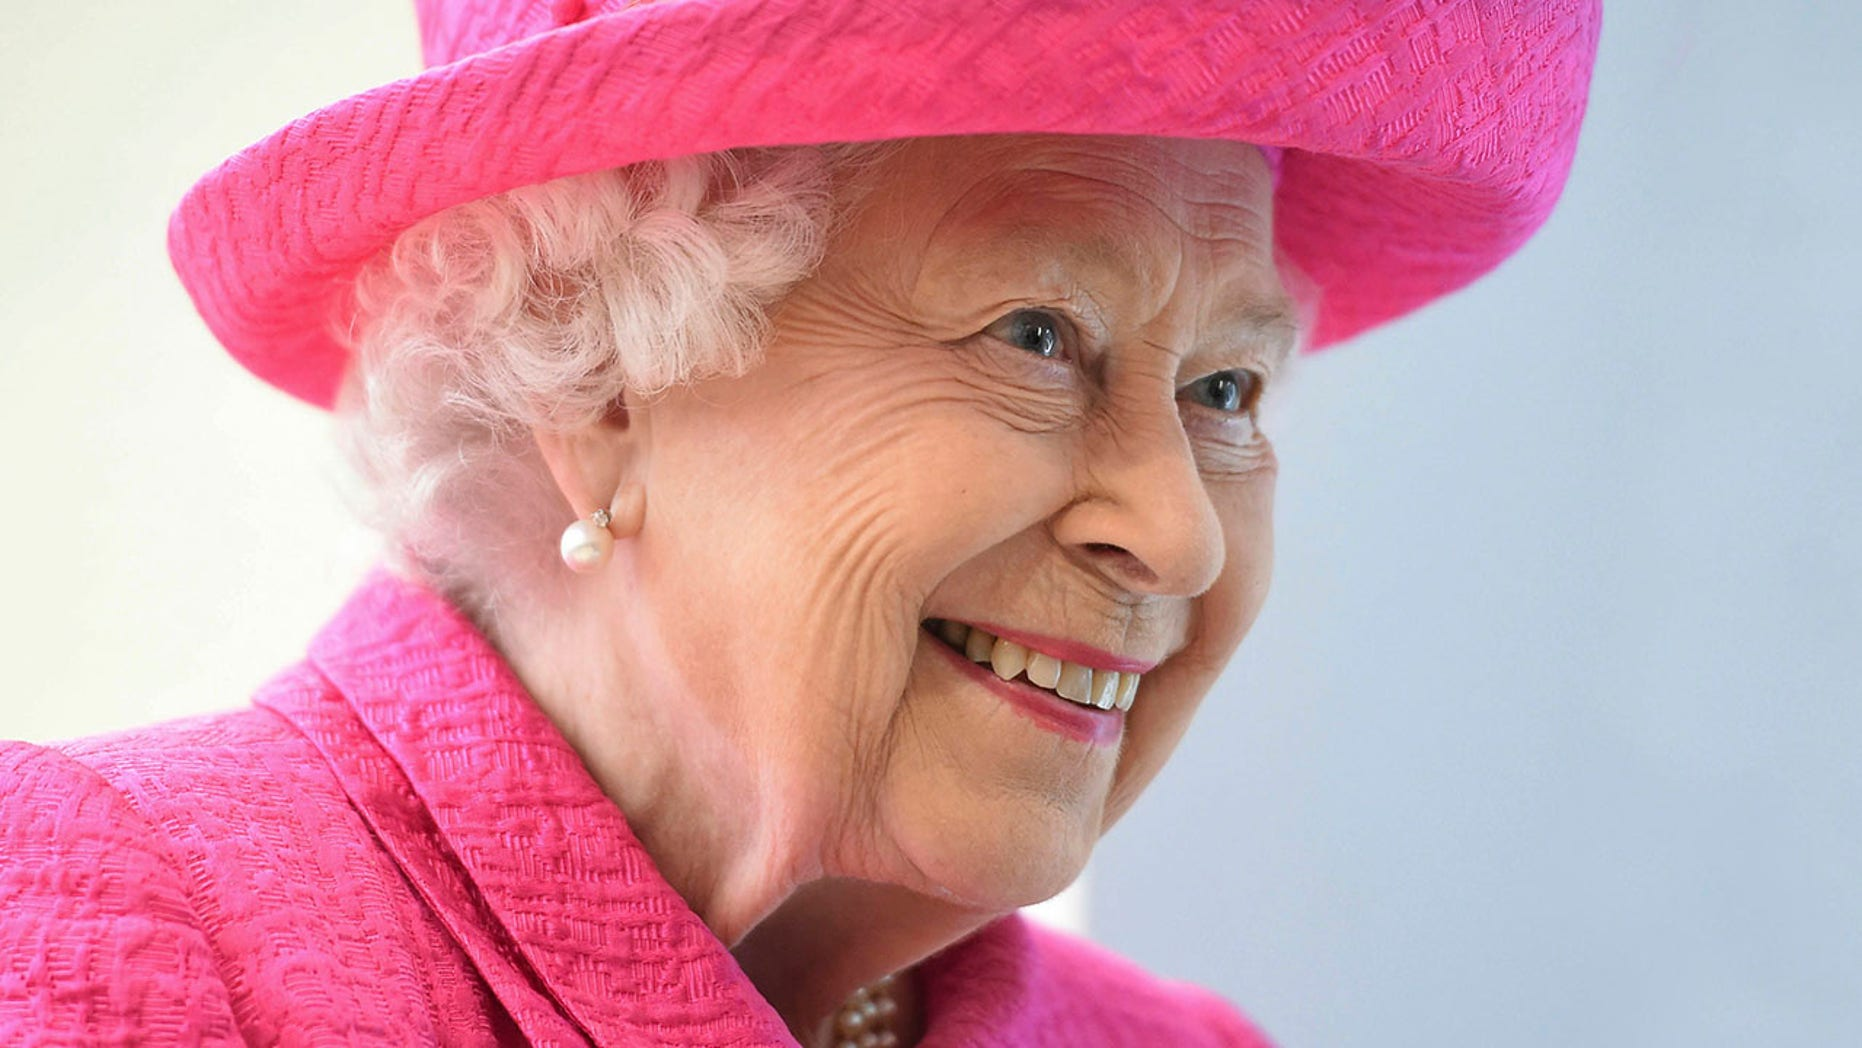 Britain's Queen Elizabeth II during a visit to the Royal Papworth Hospital in Cambridge, England, on July 9, 2019.  (Joe Giddens/PA via AP)